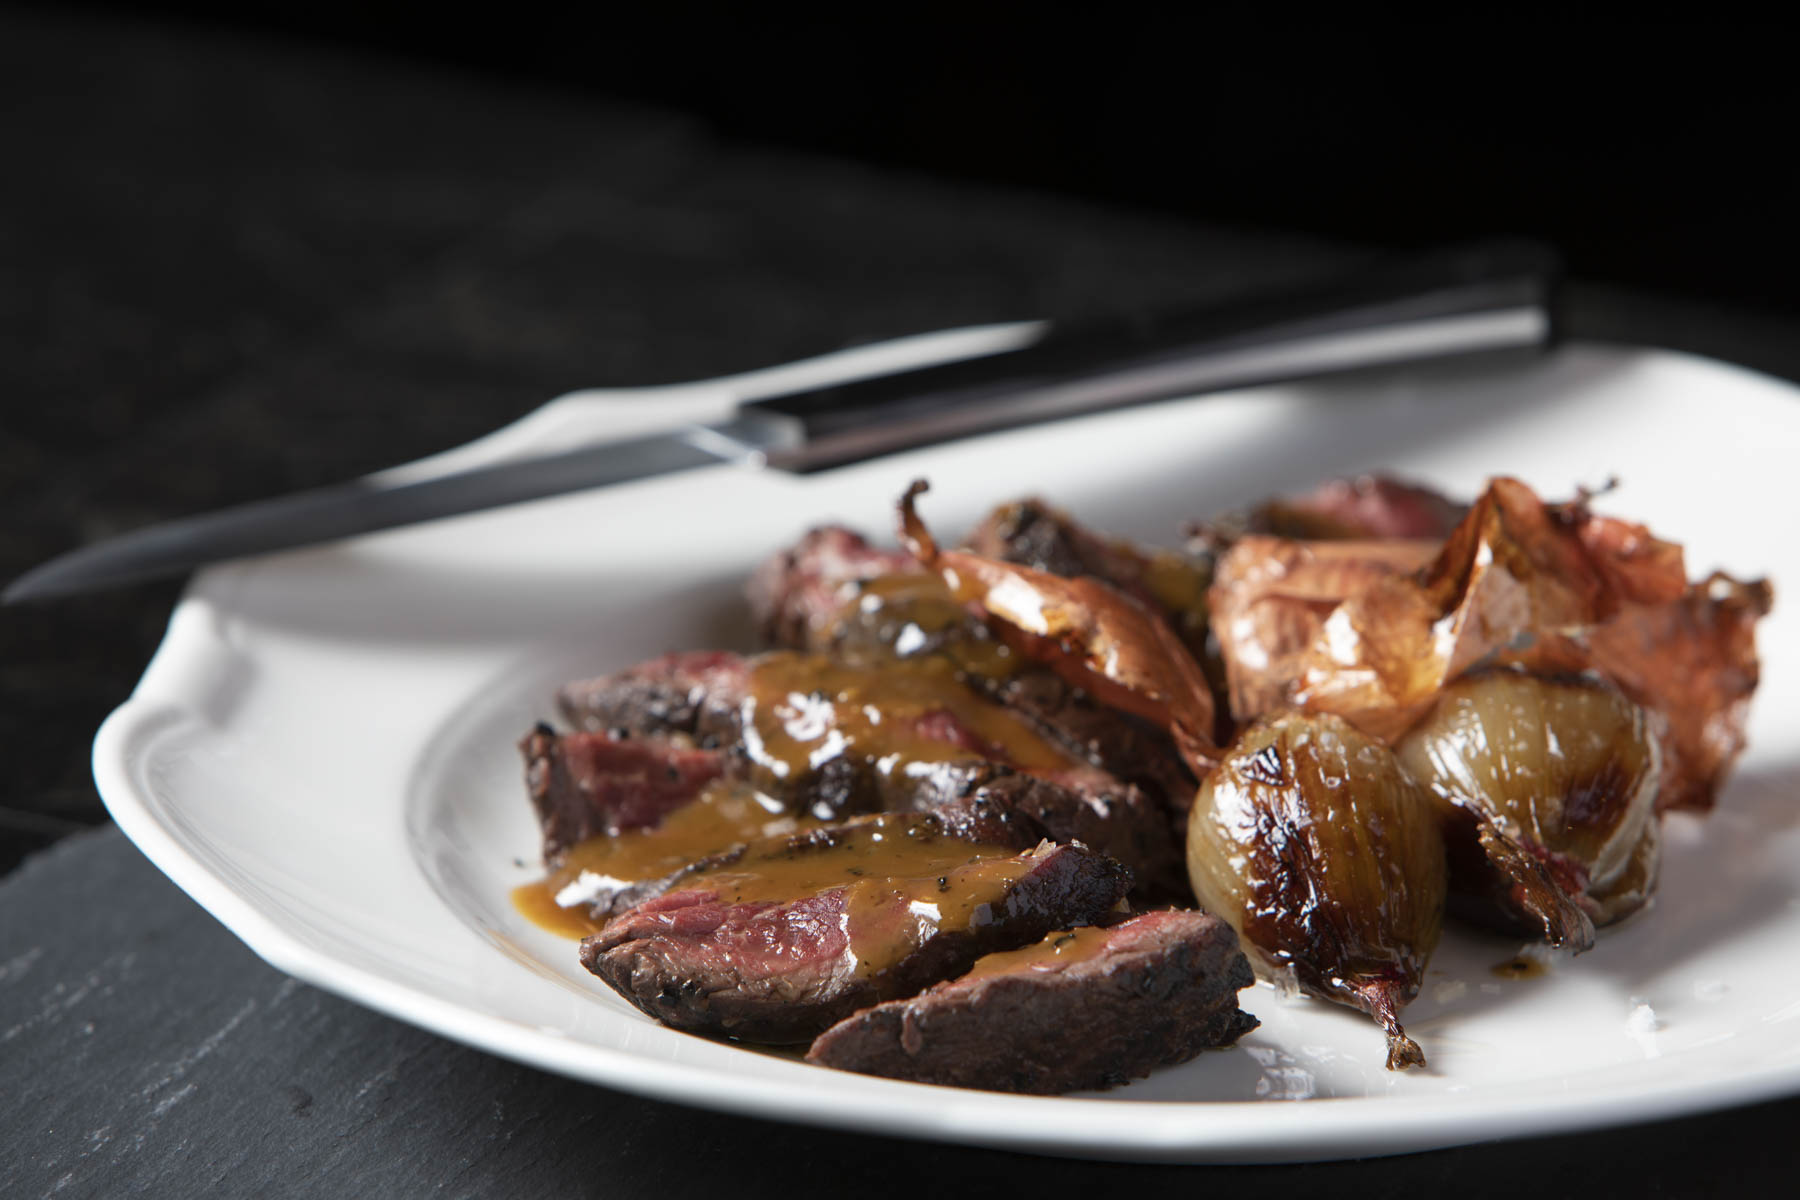 Steak with onions and sides at The Barish, Nancy Silverton's new Hollywood steakhouse